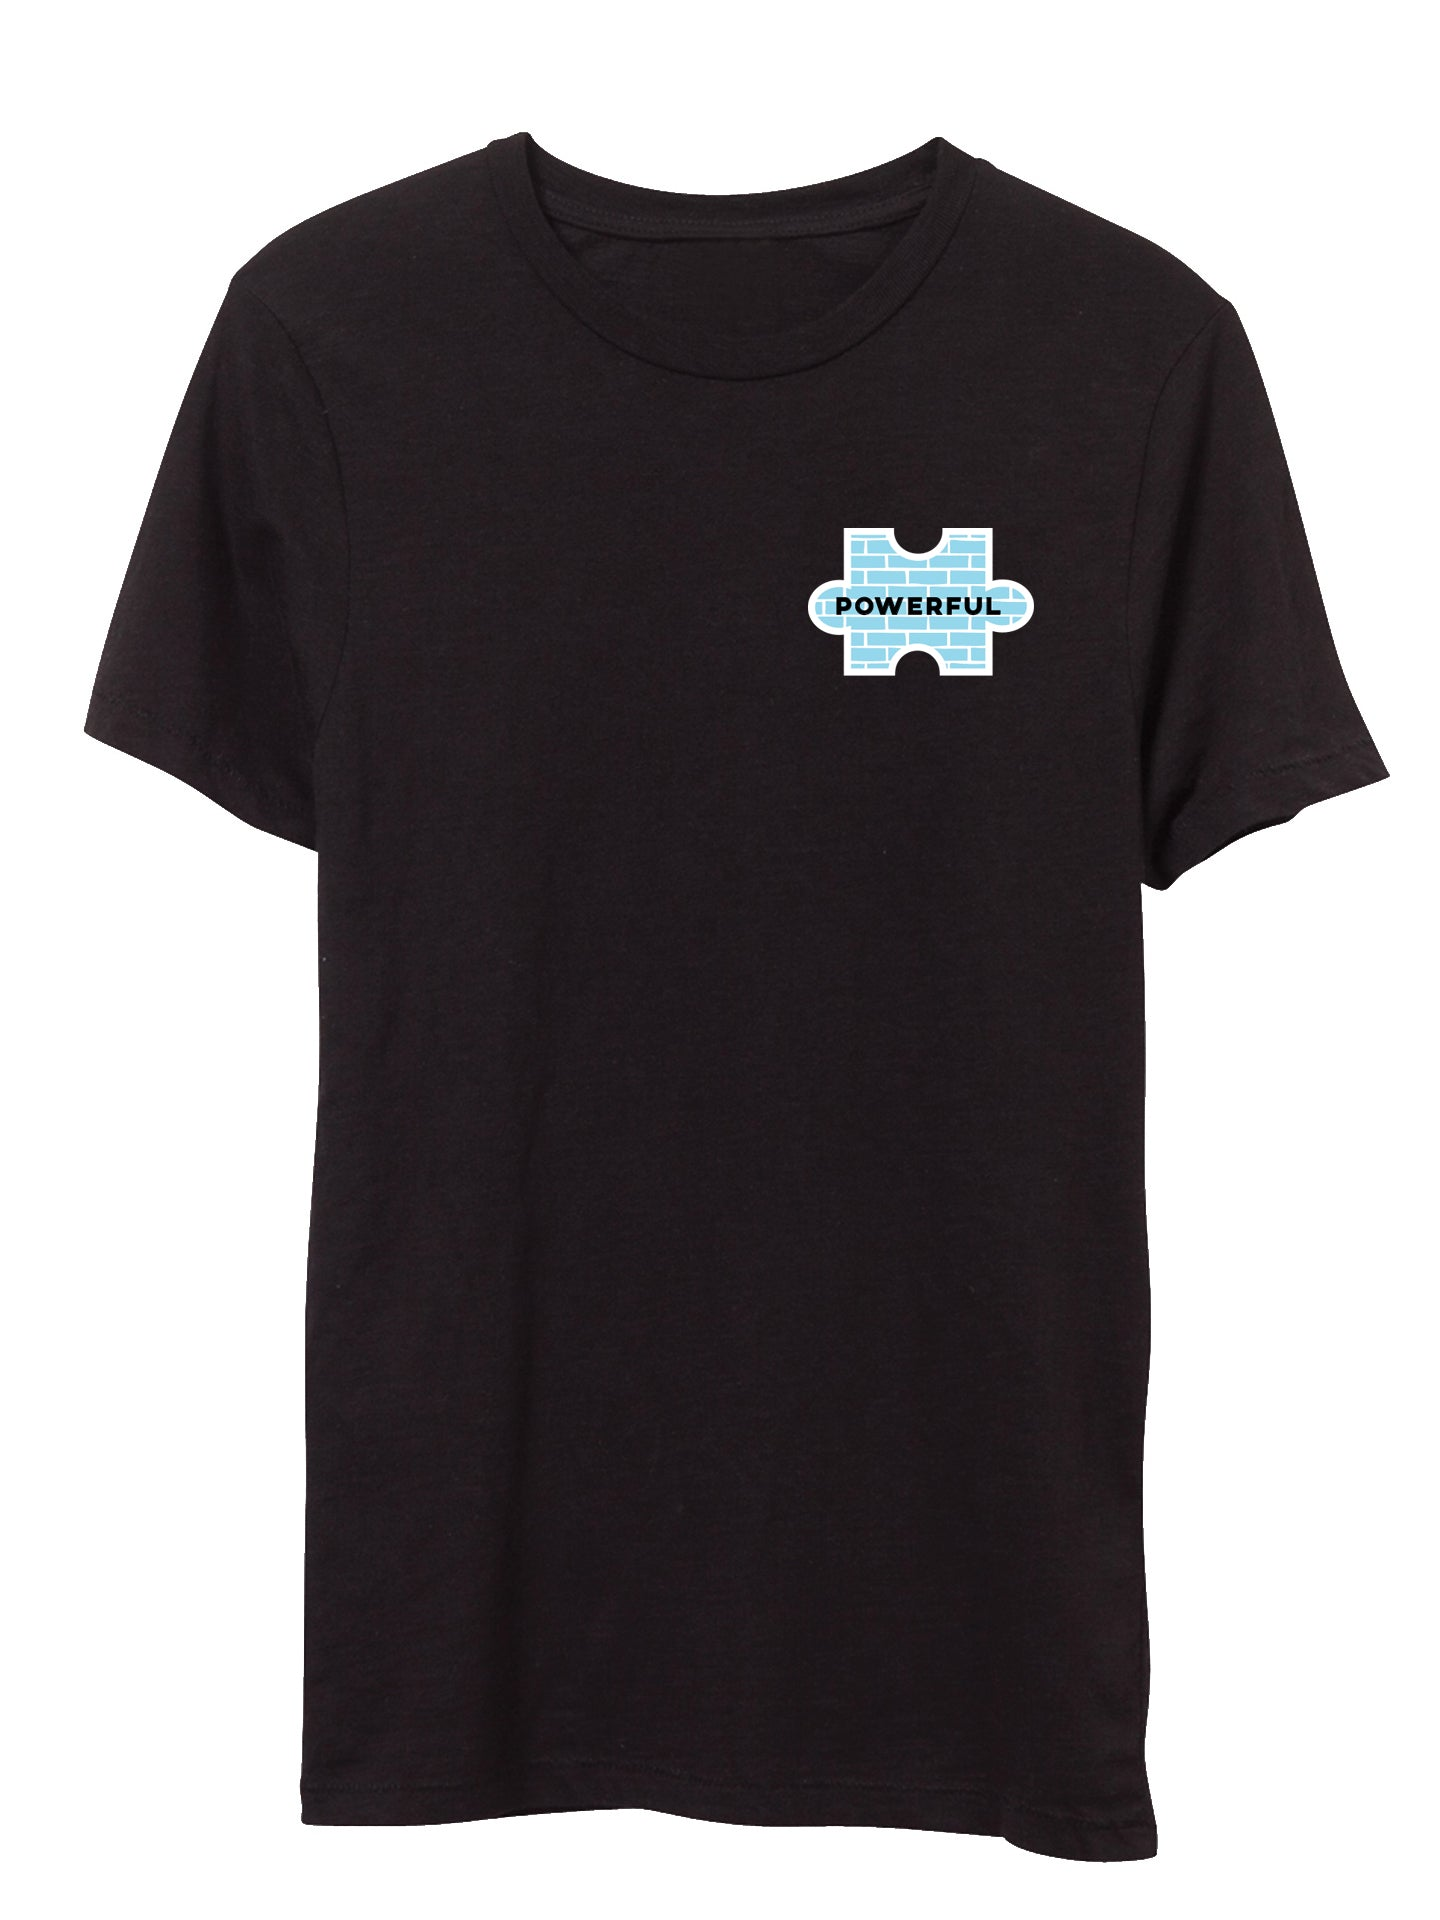 The Power of Words - Men's Tee - Puzzle Pieces - POWERFUL